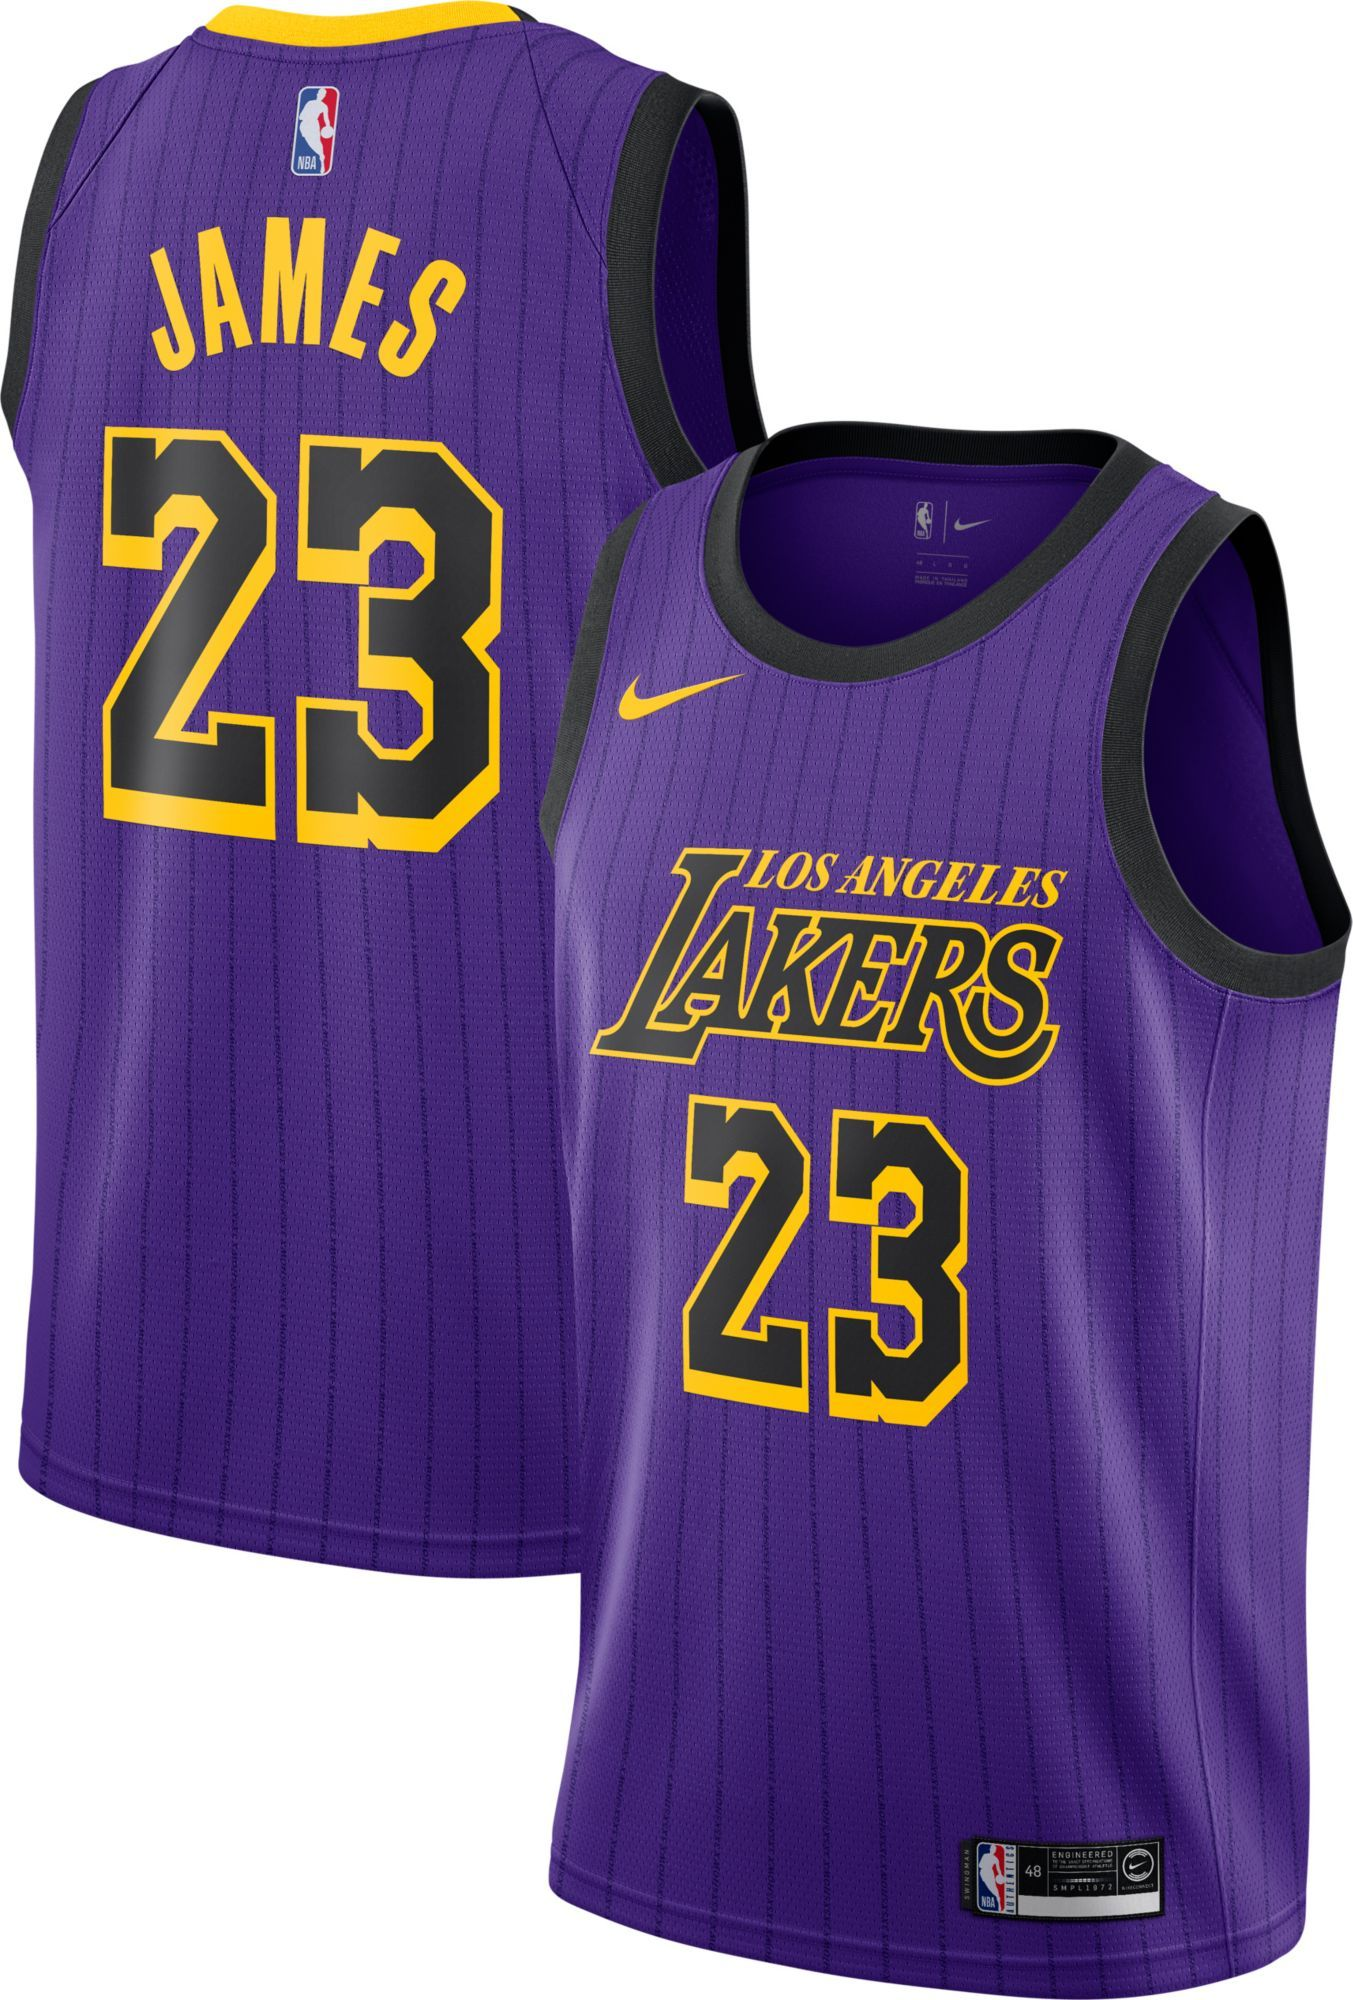 e0ed3e5ae4d Nike Men s Los Angeles Lakers LeBron James Dri-FIT City Edition Swingman  Jersey